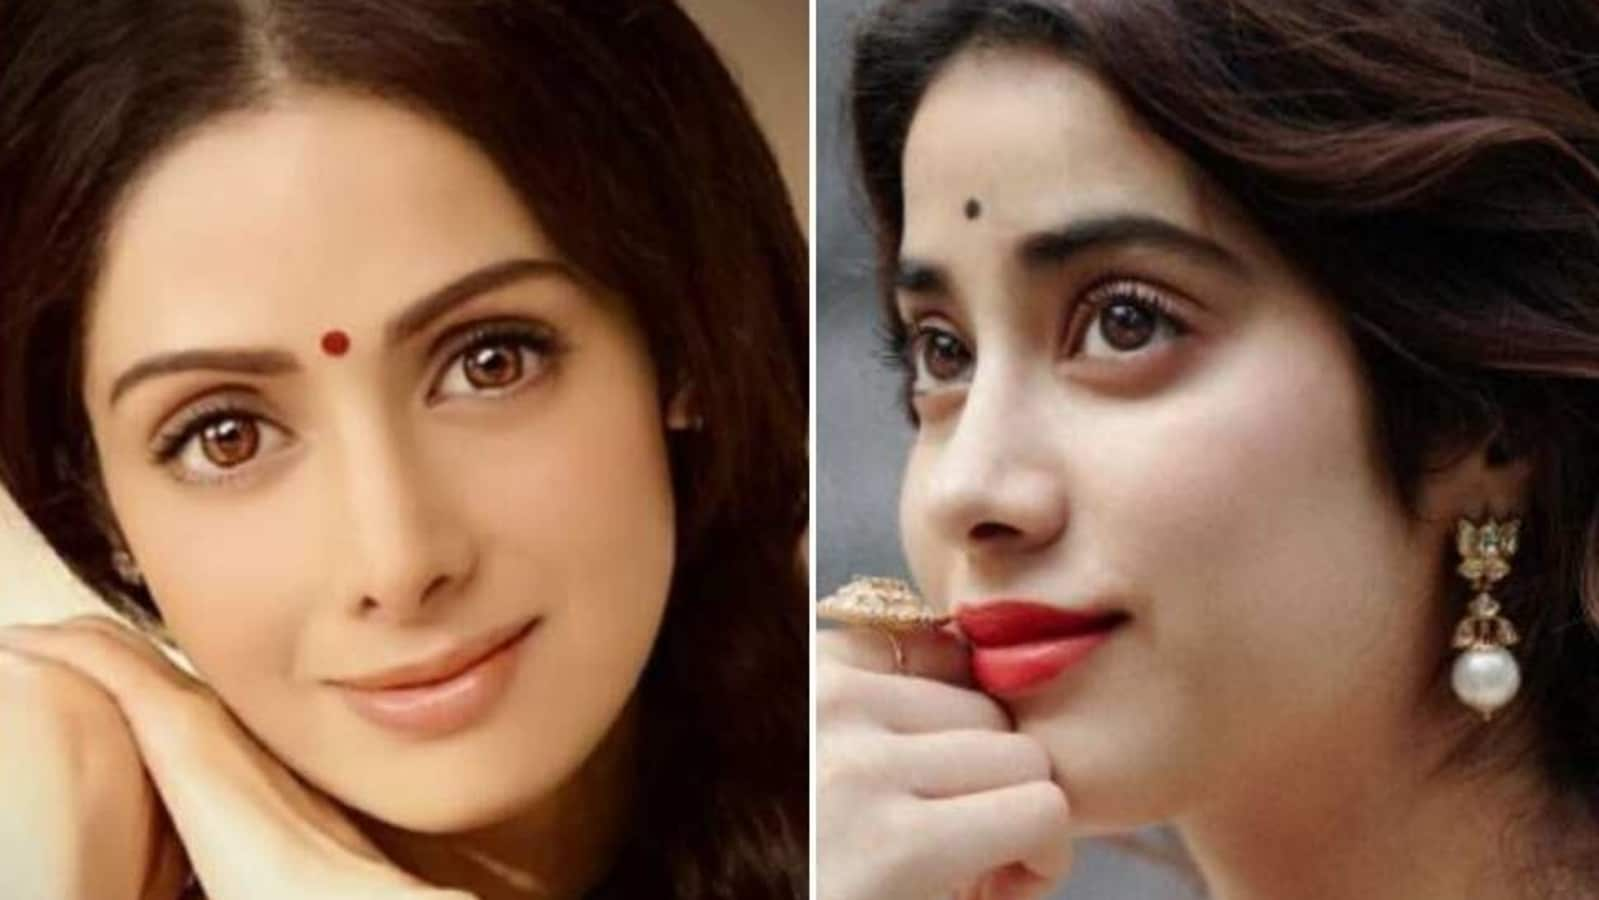 When Janhvi Kapoor said how Sridevi didn't want her to be in films: 'She thought I was naïve' - Hindustan Times